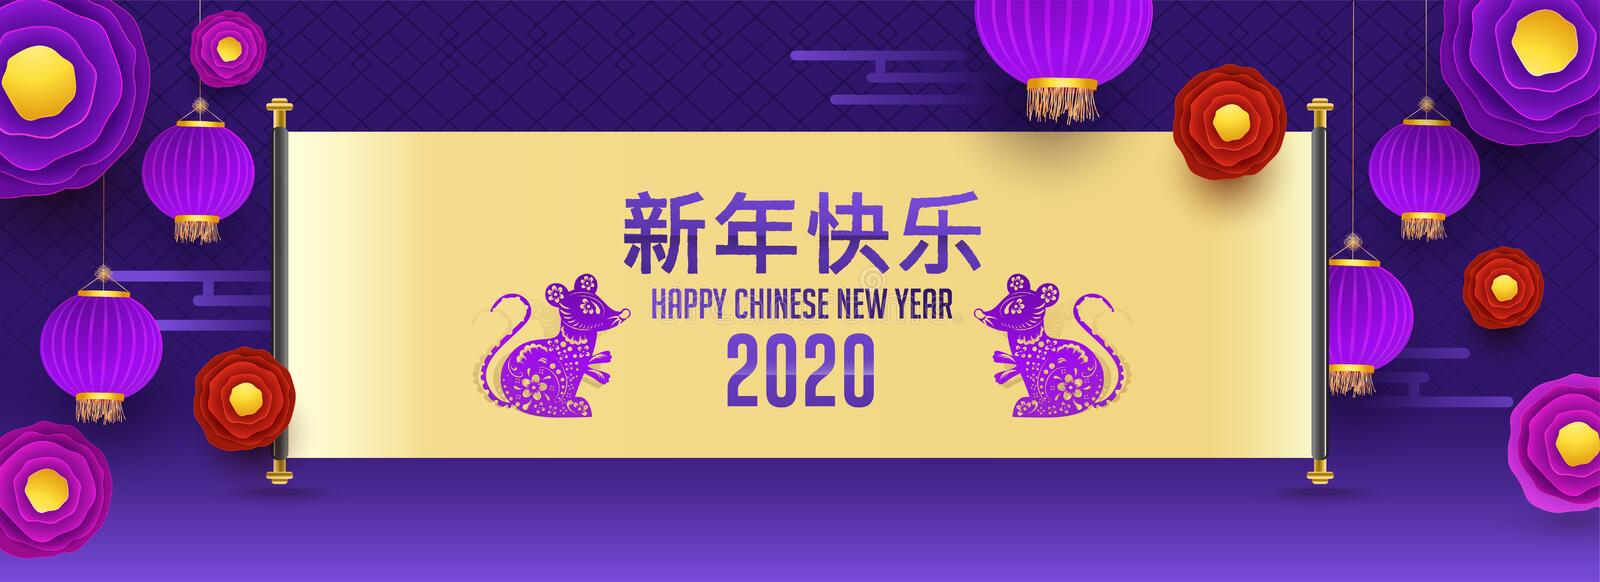 Happy New Year text in Chinese Language with Rat Zodiac sign on scroll paper decorated with hanging lanterns and flowers on purple royalty free illustration